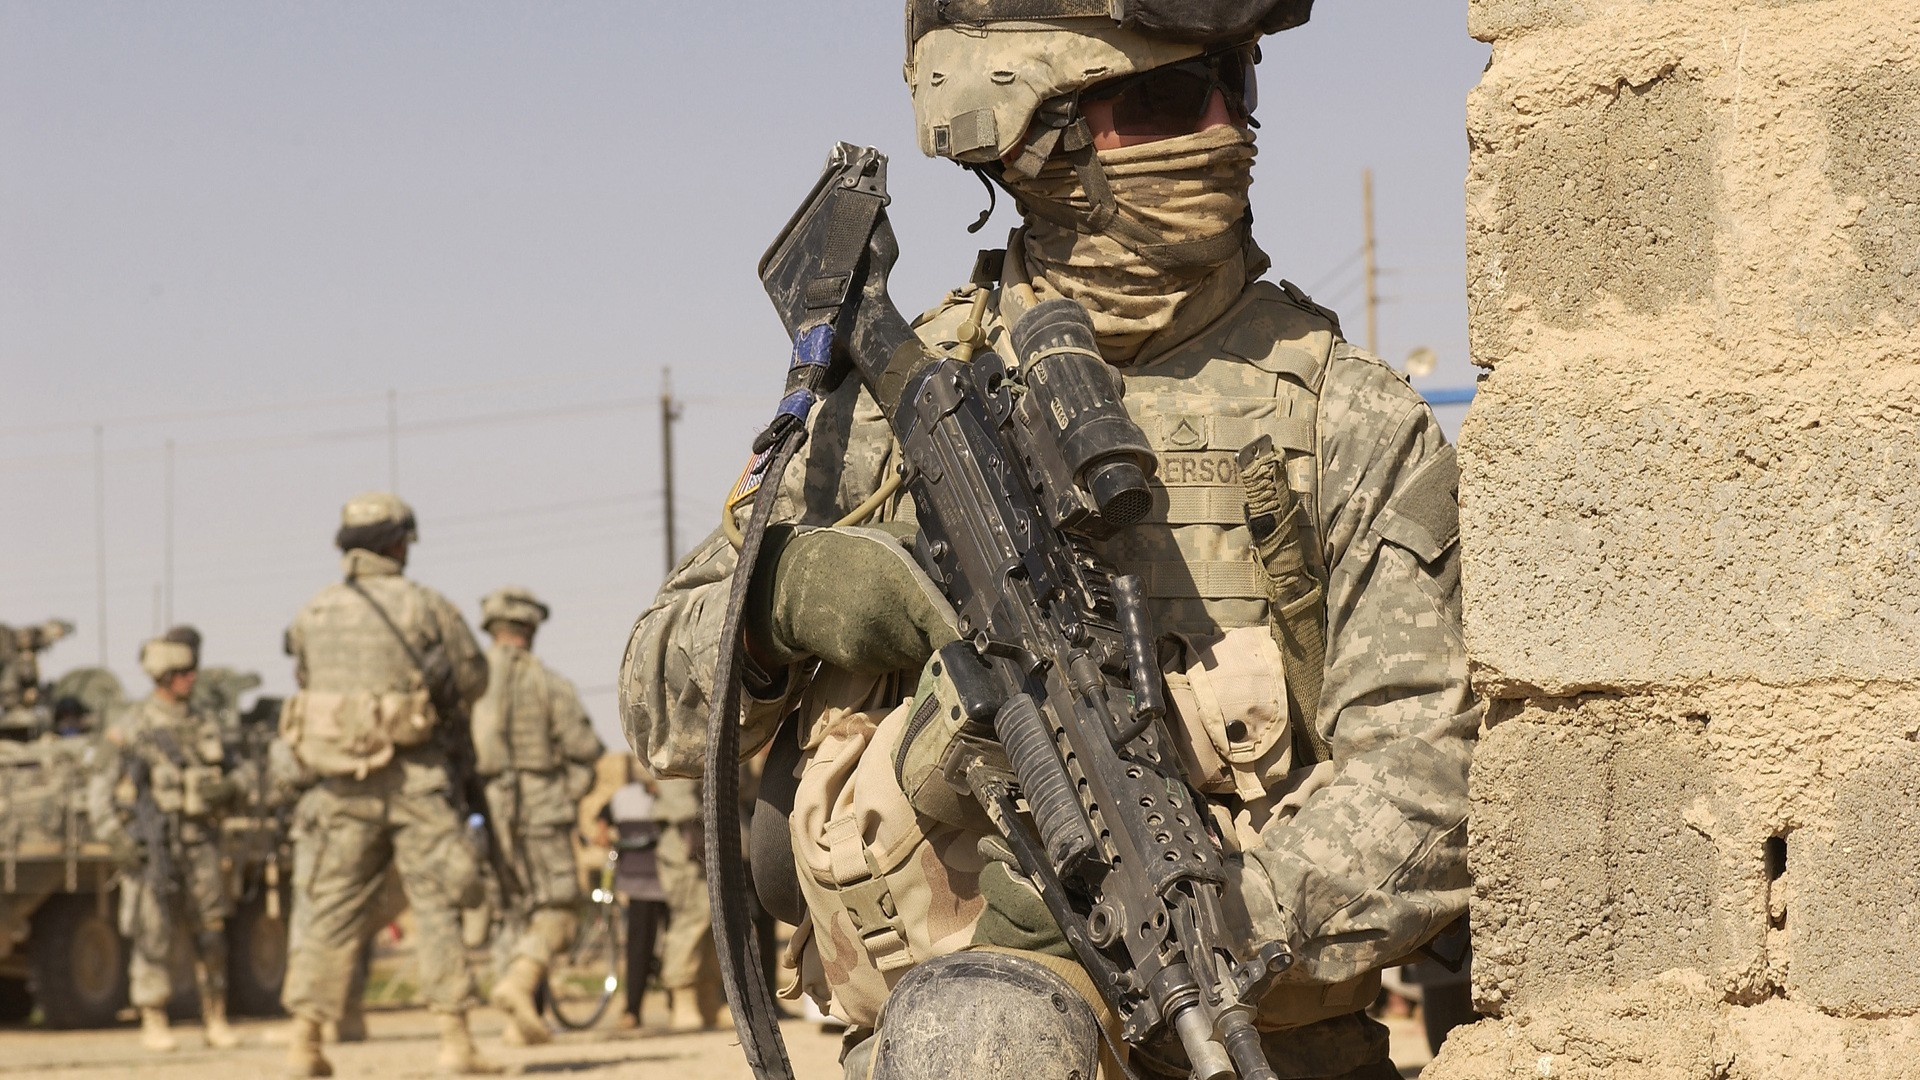 Soldiers guns military Afghanistan US Army wars wallpaper | .